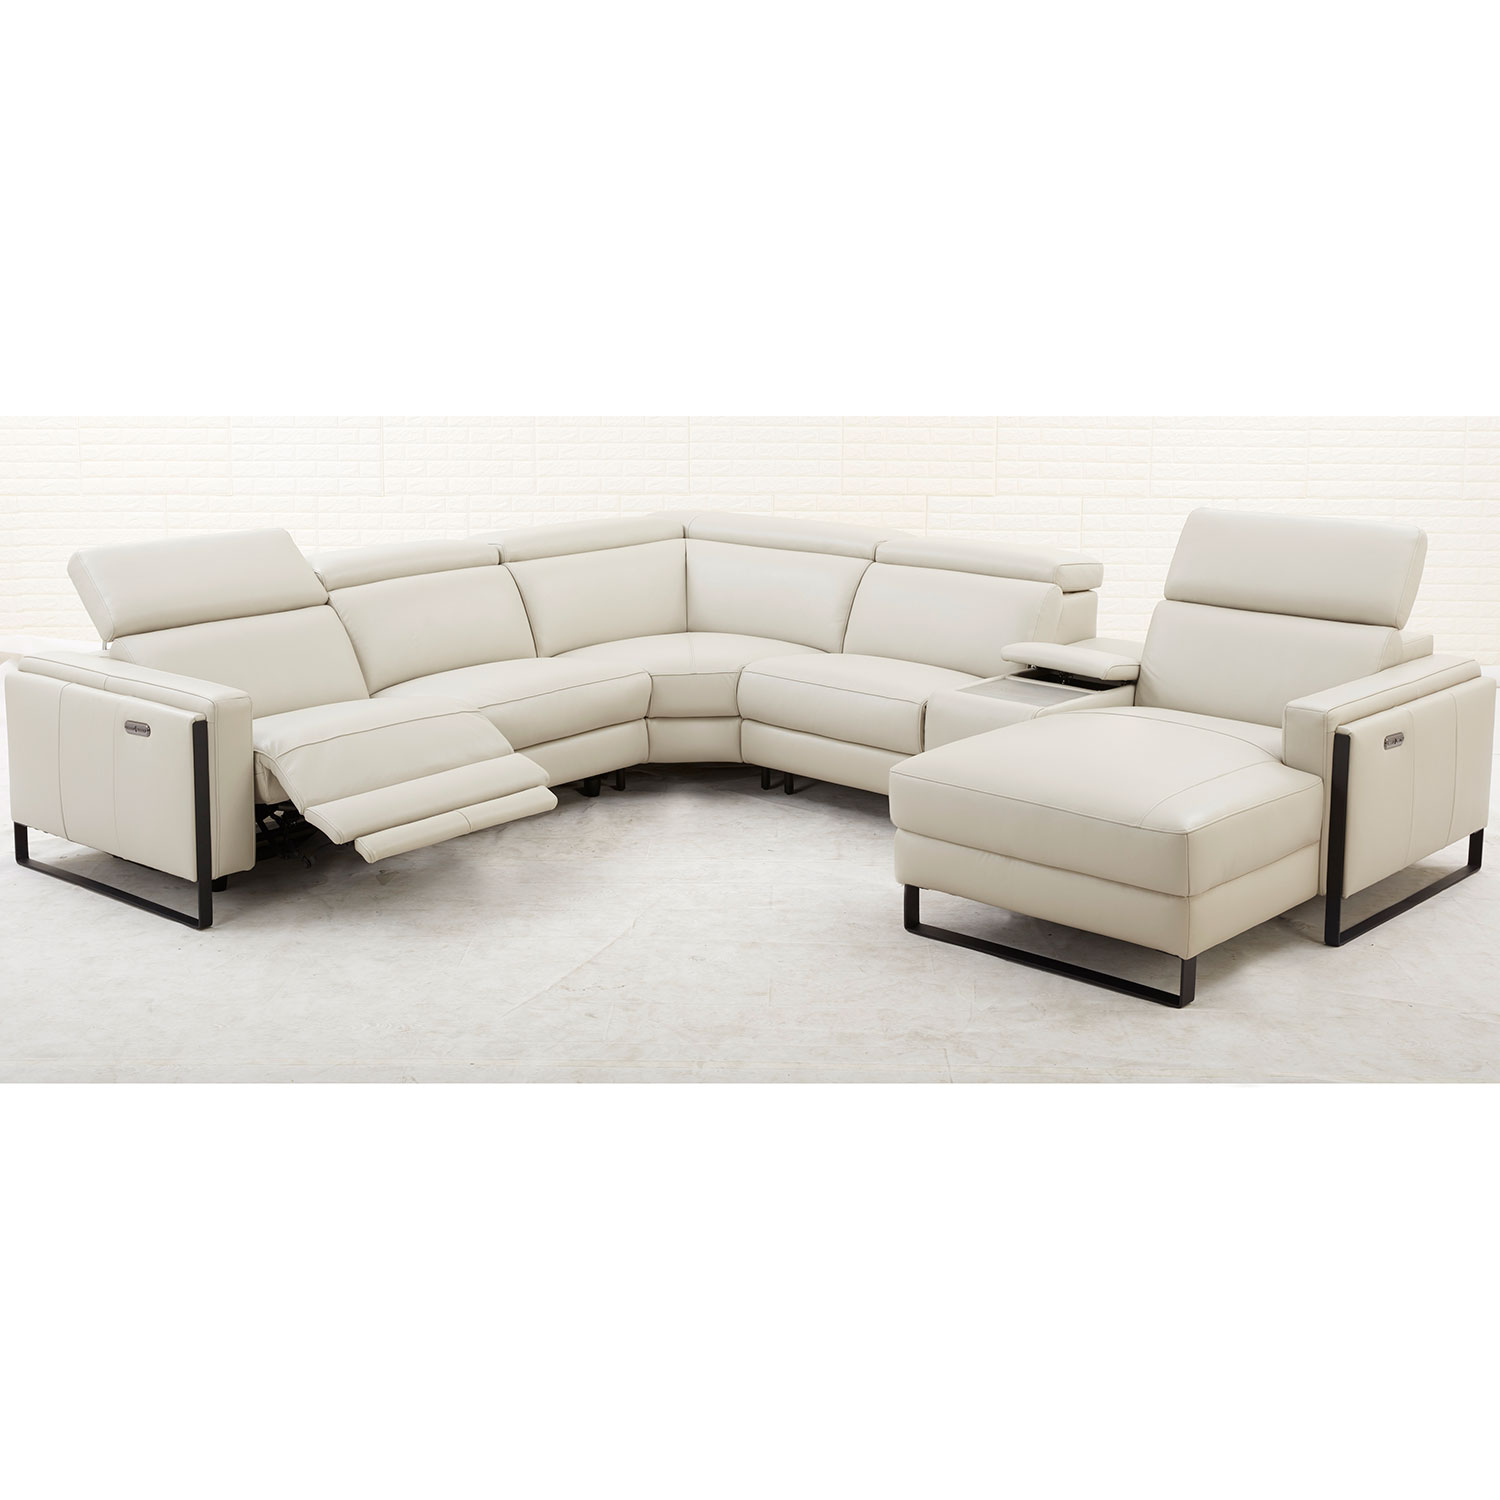 Sensational Starstruck Reclining Sectional Sofa W Power Headrest In Off White Top Grain Leather By Southern Motion Download Free Architecture Designs Xoliawazosbritishbridgeorg